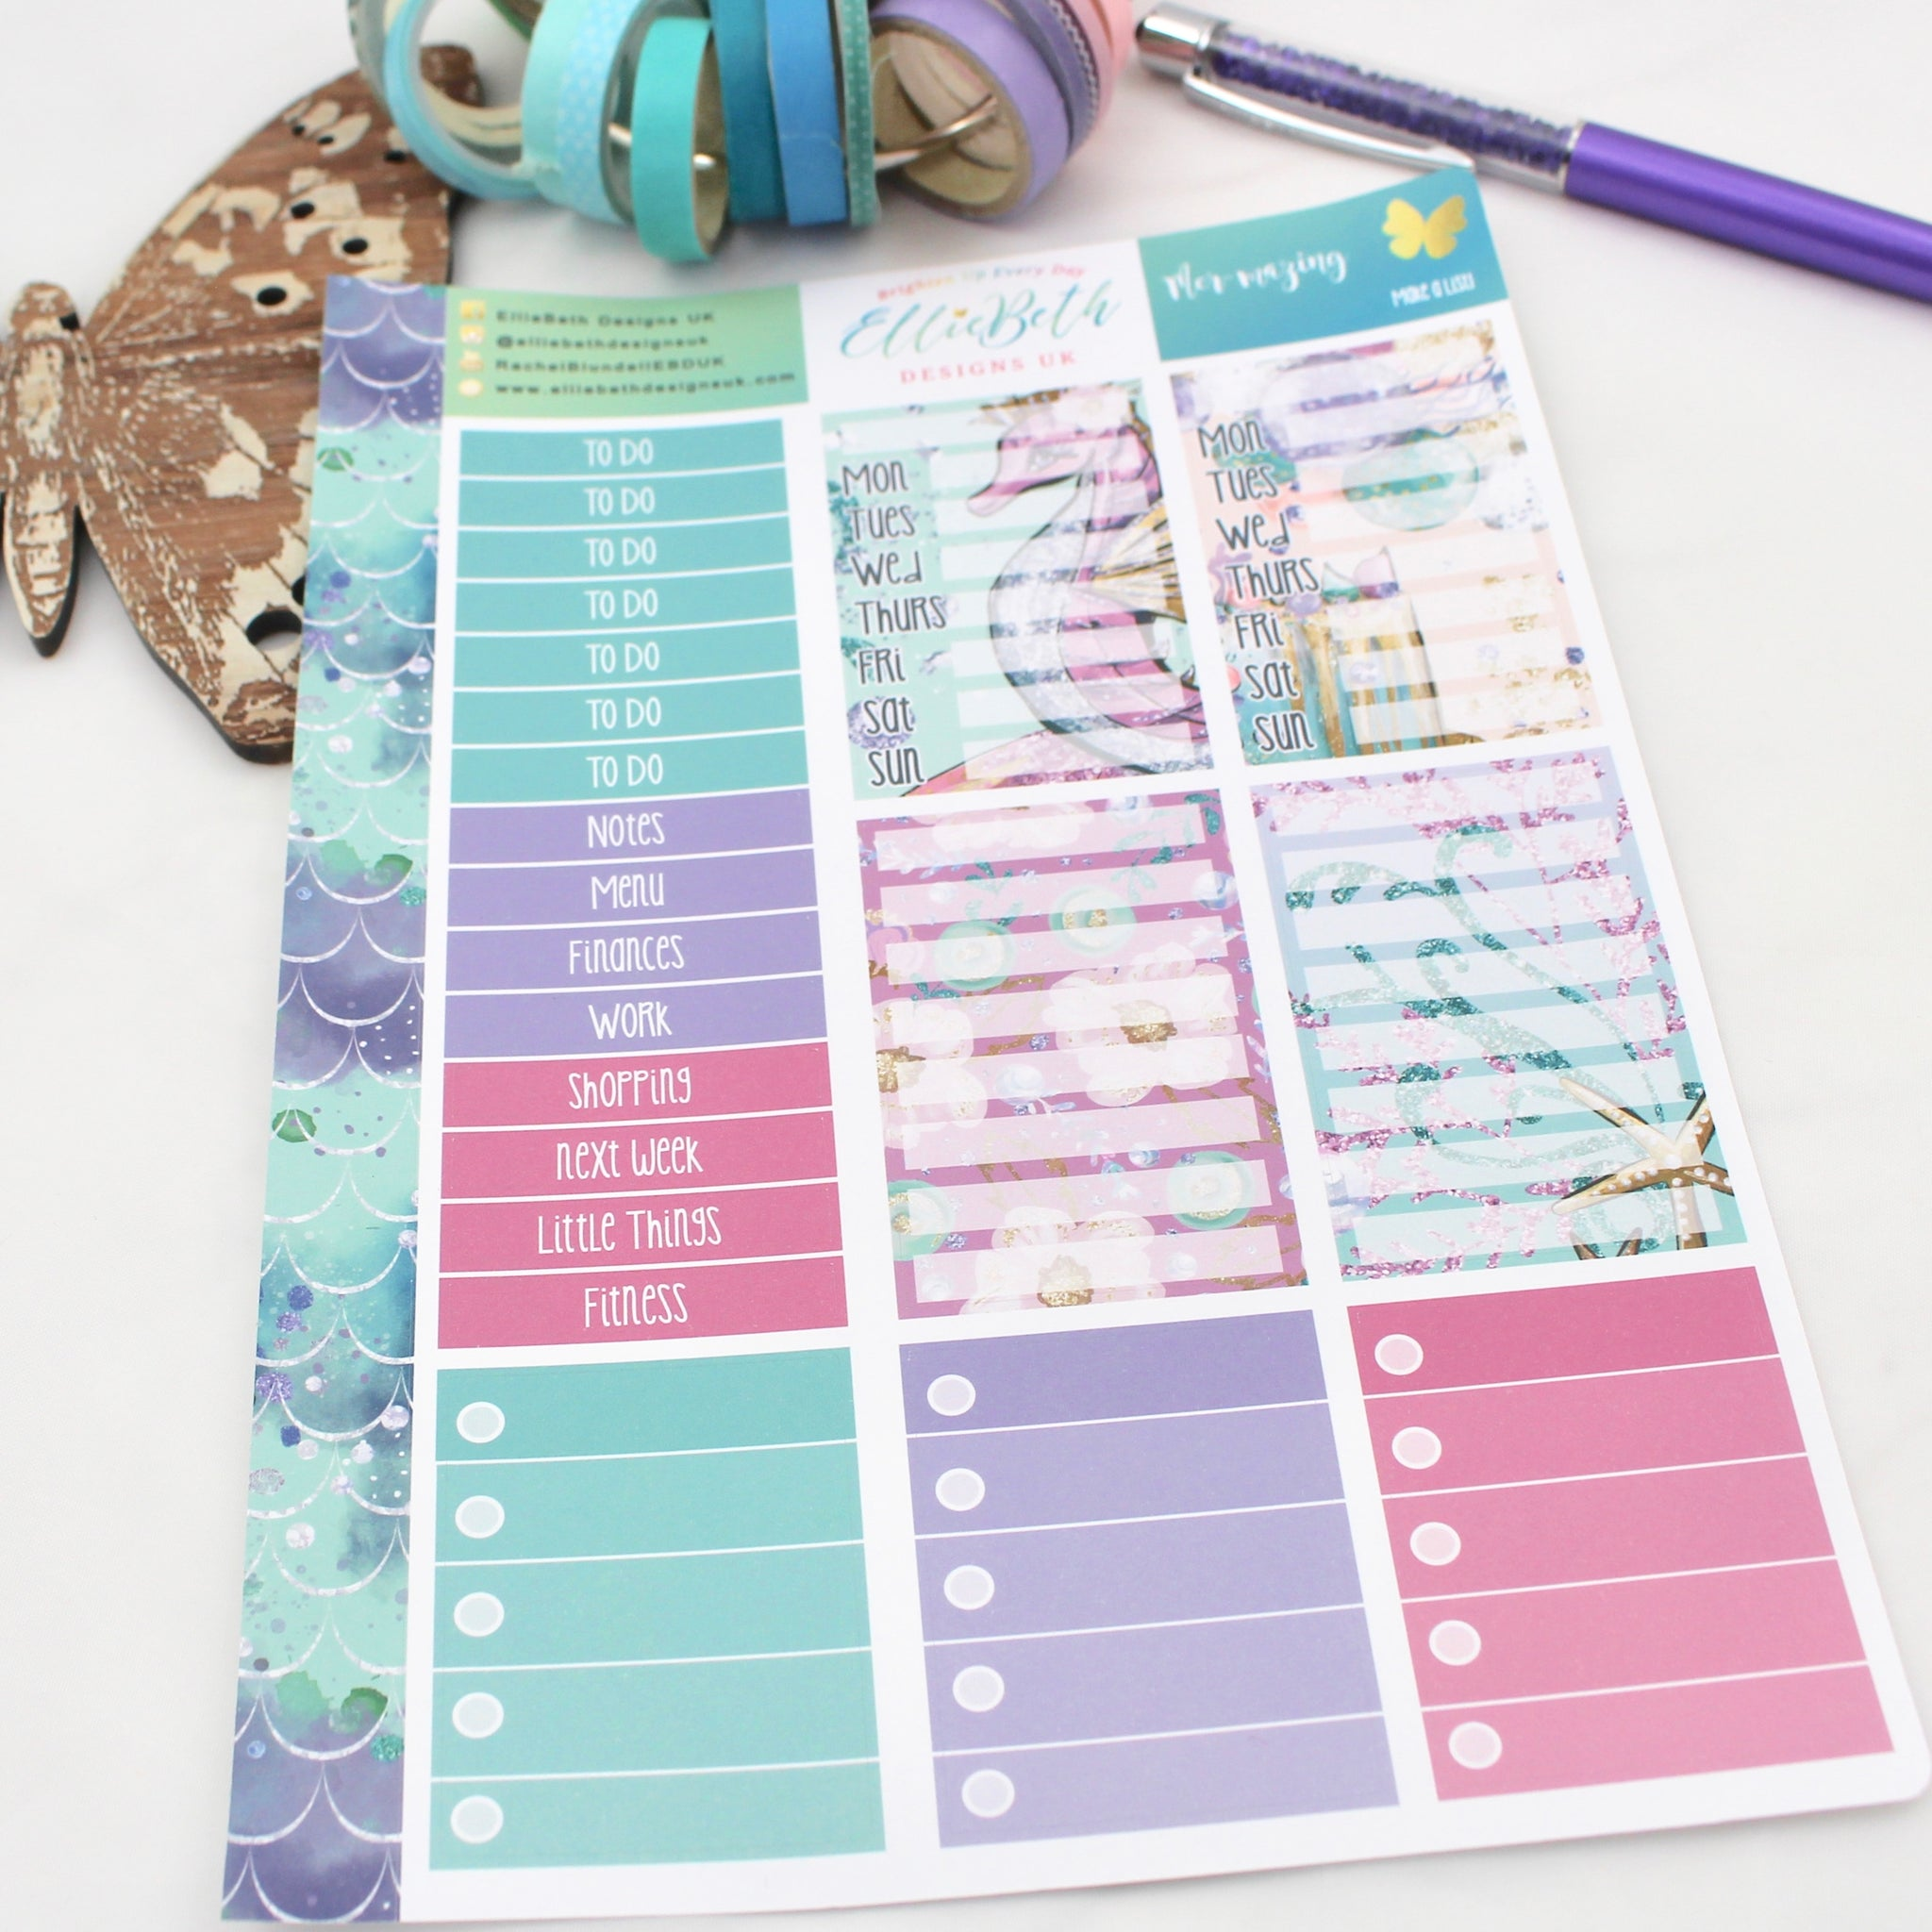 Mer-mazing - Make a List Sheet -  A5 binder ready planner stickers